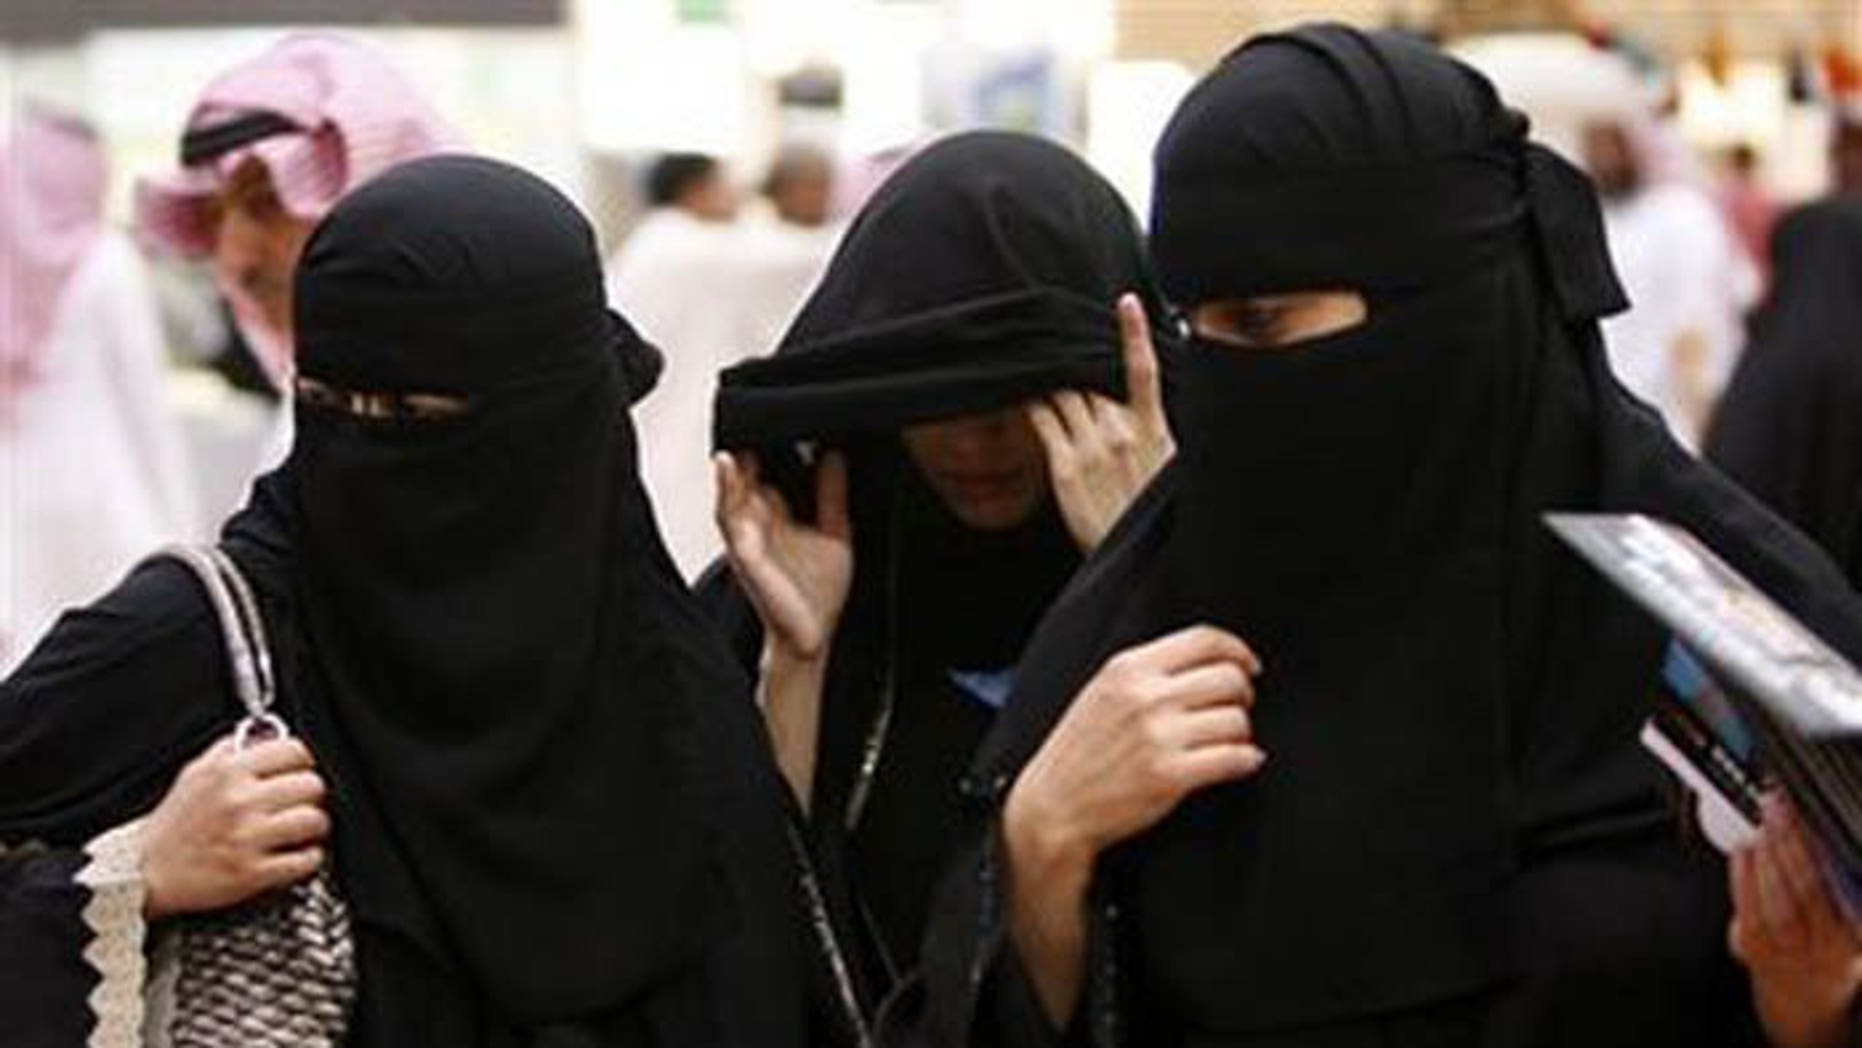 Saudi women are pictured in this undated photo. A Lebanese man was sentenced to 300 lashes with a whip and six years in prison for his role in helping a Saudi woman convert to Christianity and flee the kingdom in the latest example of the religious intolerance that grips the region.